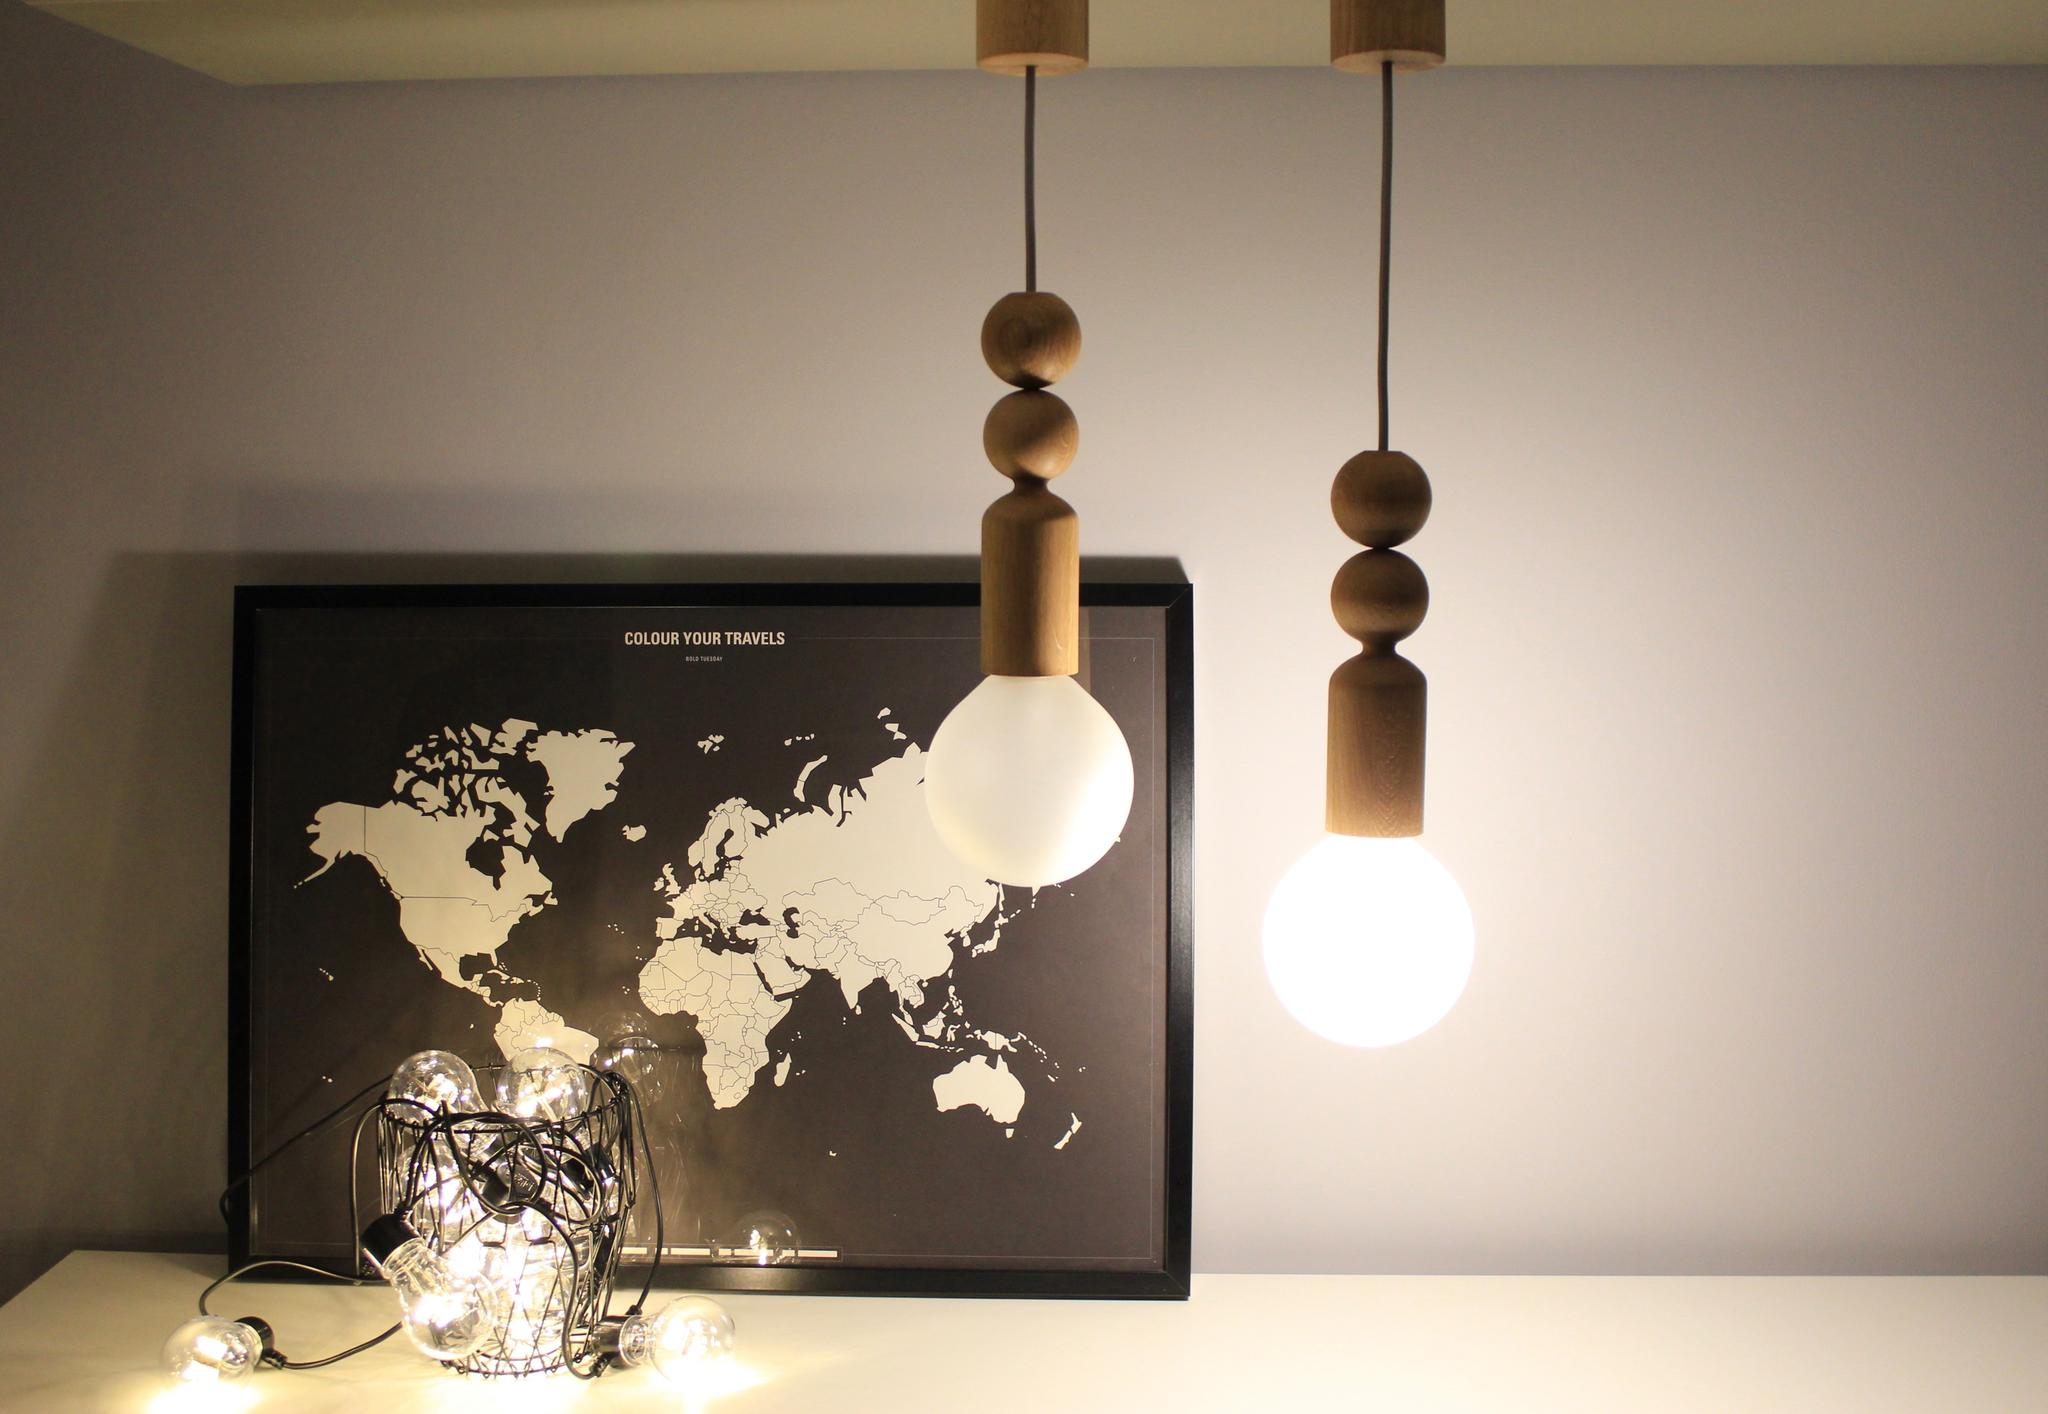 Pendant Or Table Lamp Klaara And Noora Pulo S Like To Hang Lie Down On The Desk In Both Cases They Act As Local Lightings